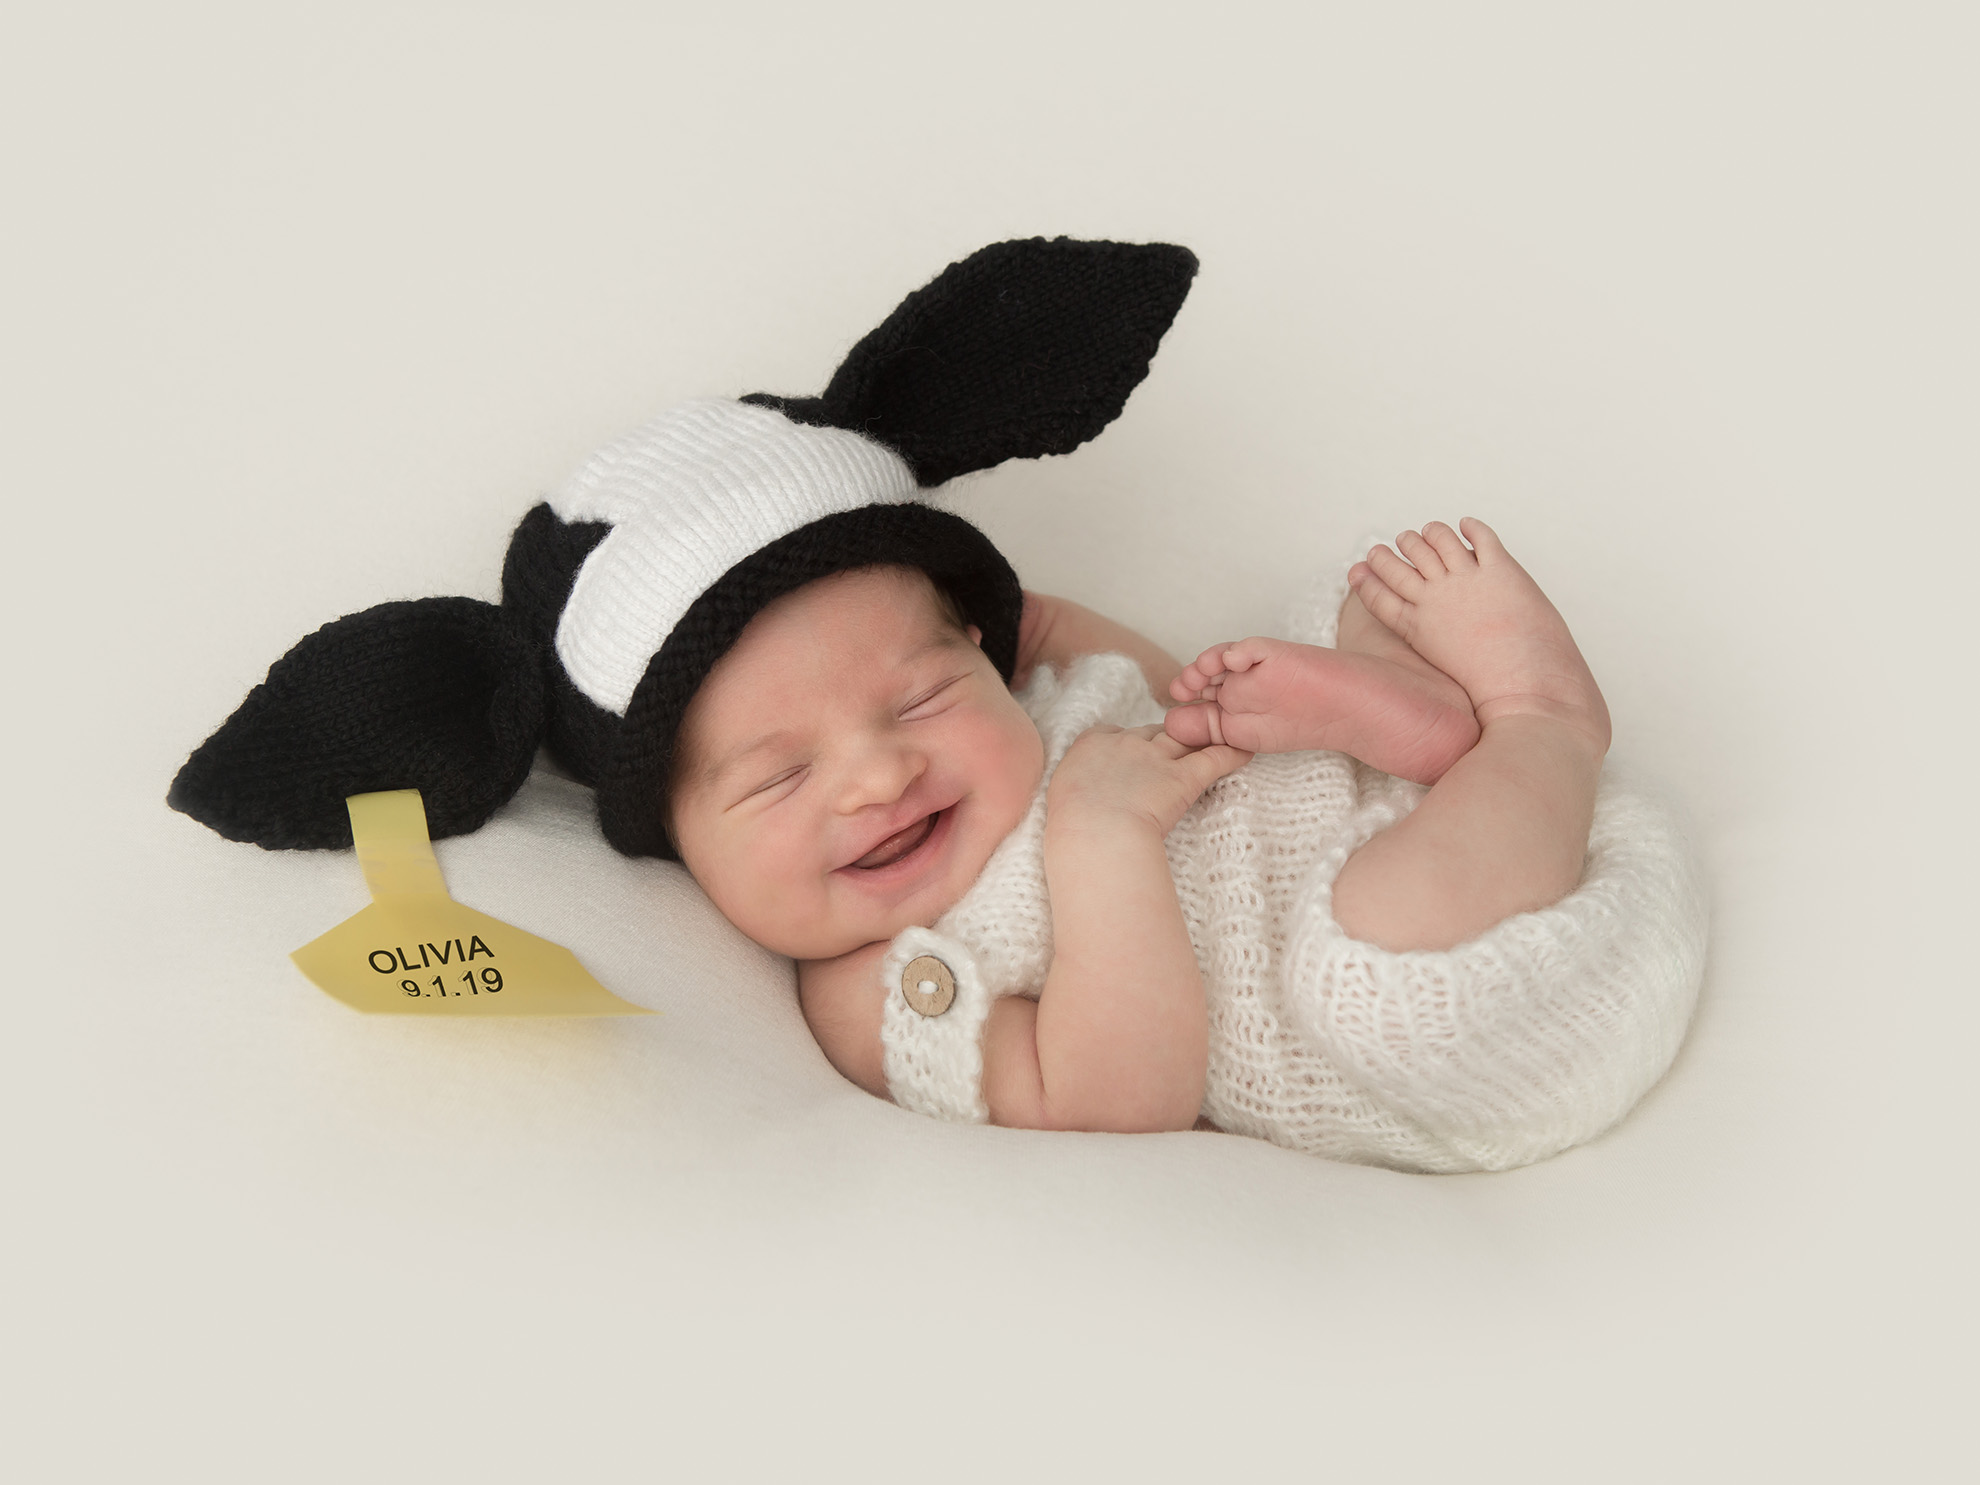 Newborn-photography-design-baby-cow-with-ear-tag.jpg